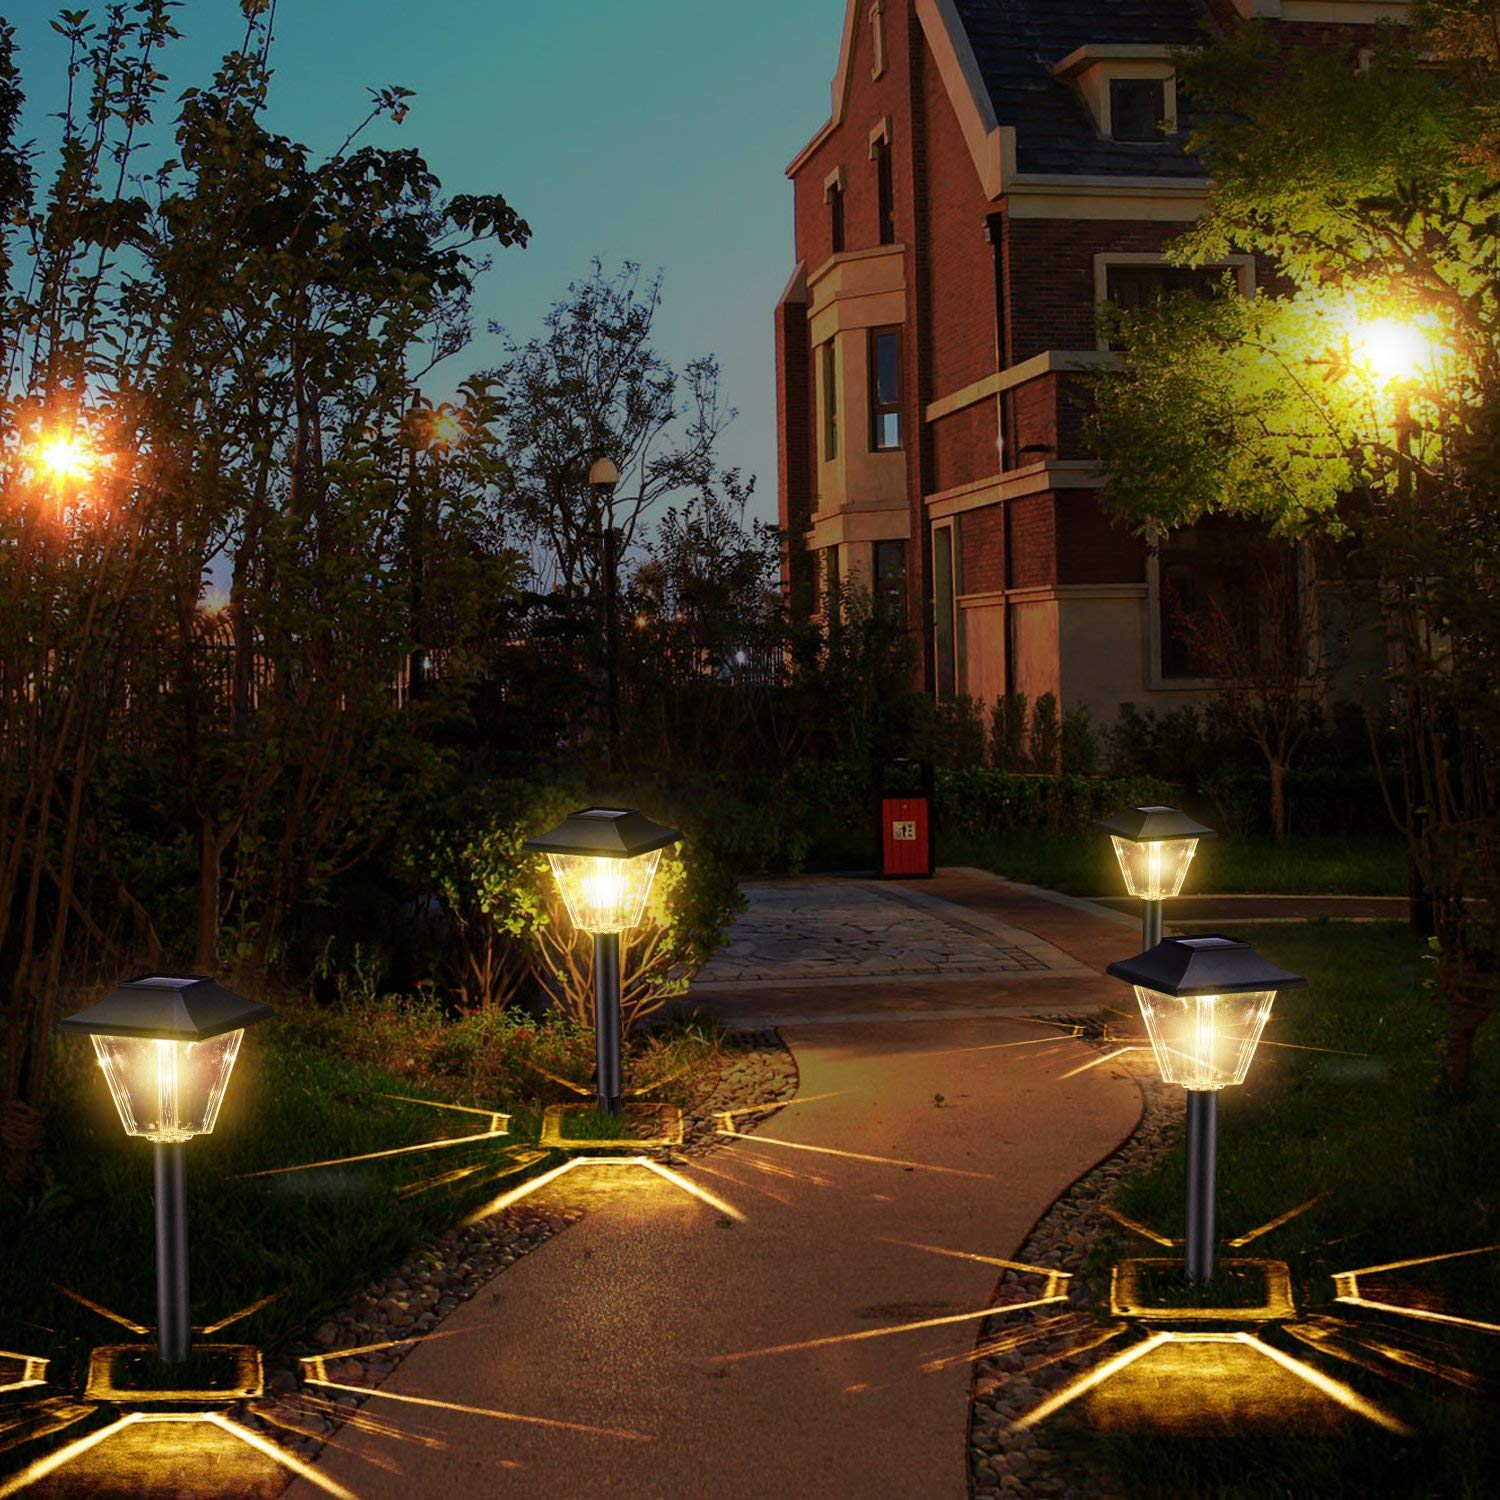 Amazon.com: Sunwind Solar Powered Garden Lights - 6 Pack Square Waterproof  Outdoor Path Lights Solar Powered for Path Patio Lawn Backyard Landscaping  ... - Amazon.com: Sunwind Solar Powered Garden Lights - 6 Pack Square